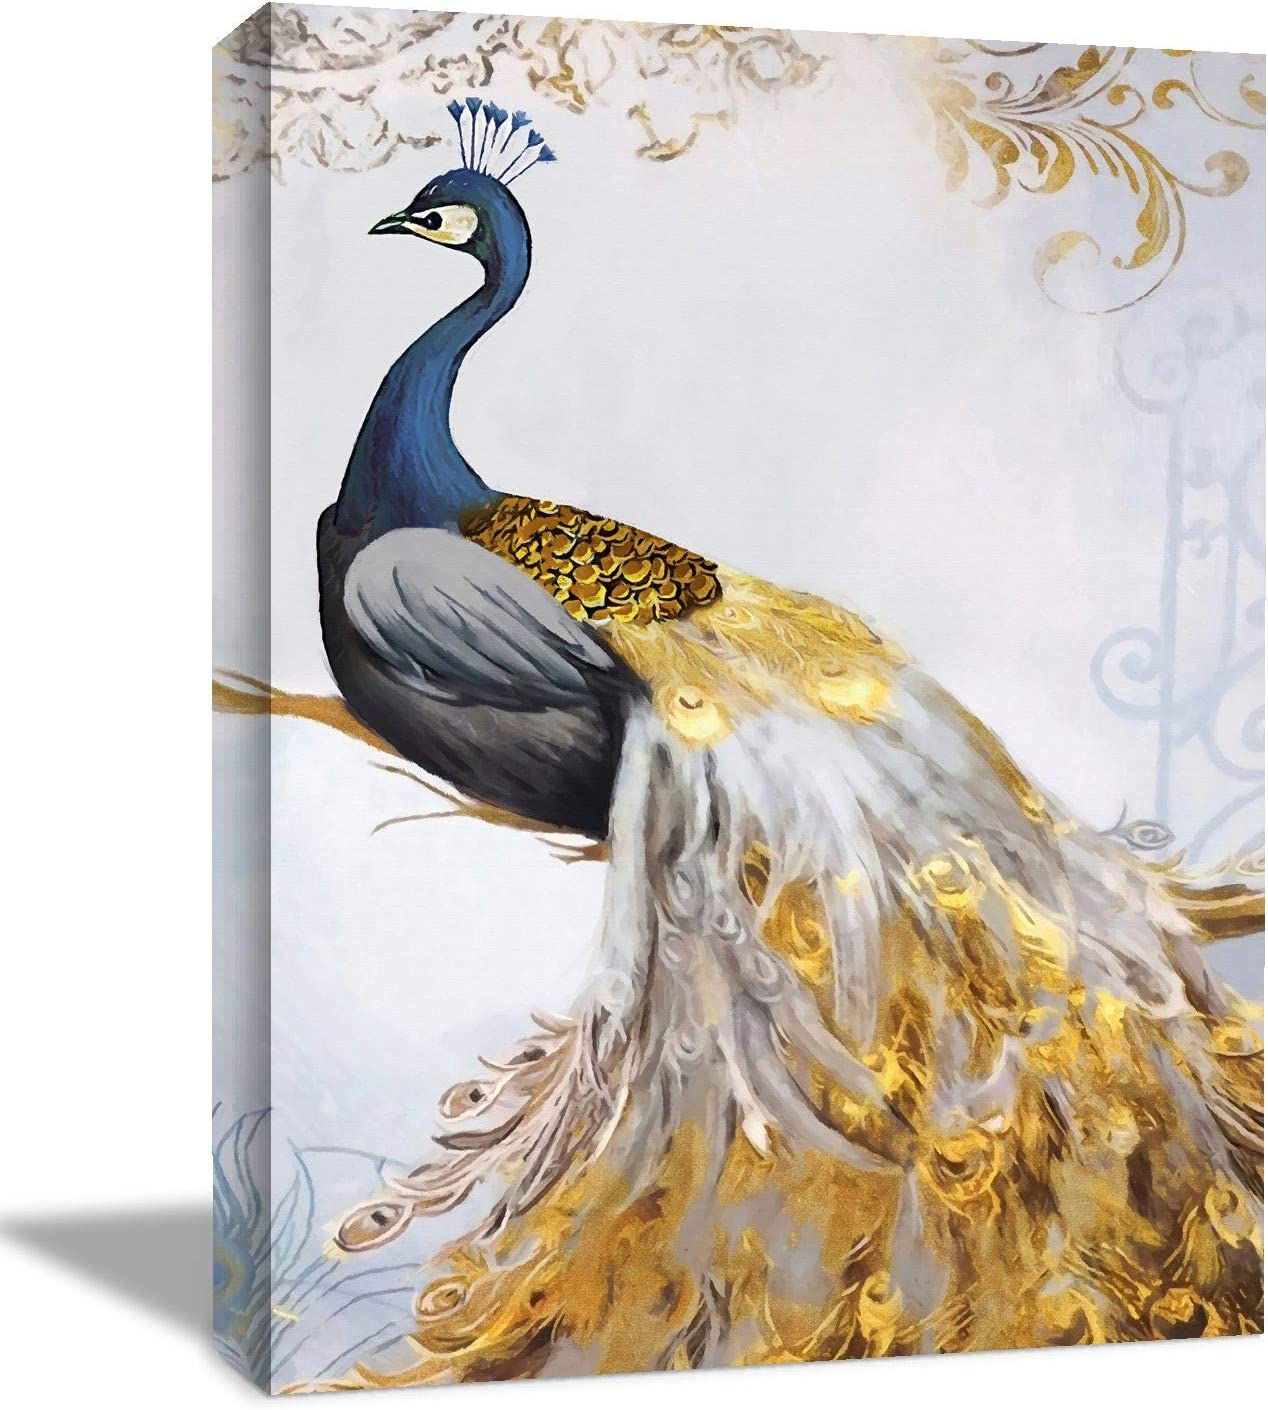 Looife Canvas Wall Art with Peacock Picture - 12x18 Inch Blue Peacock Yellow Tail Feather with Flowers Painting Artwork Giclee Prints Wall Decor for Living Room, Bedroom and Bathroom